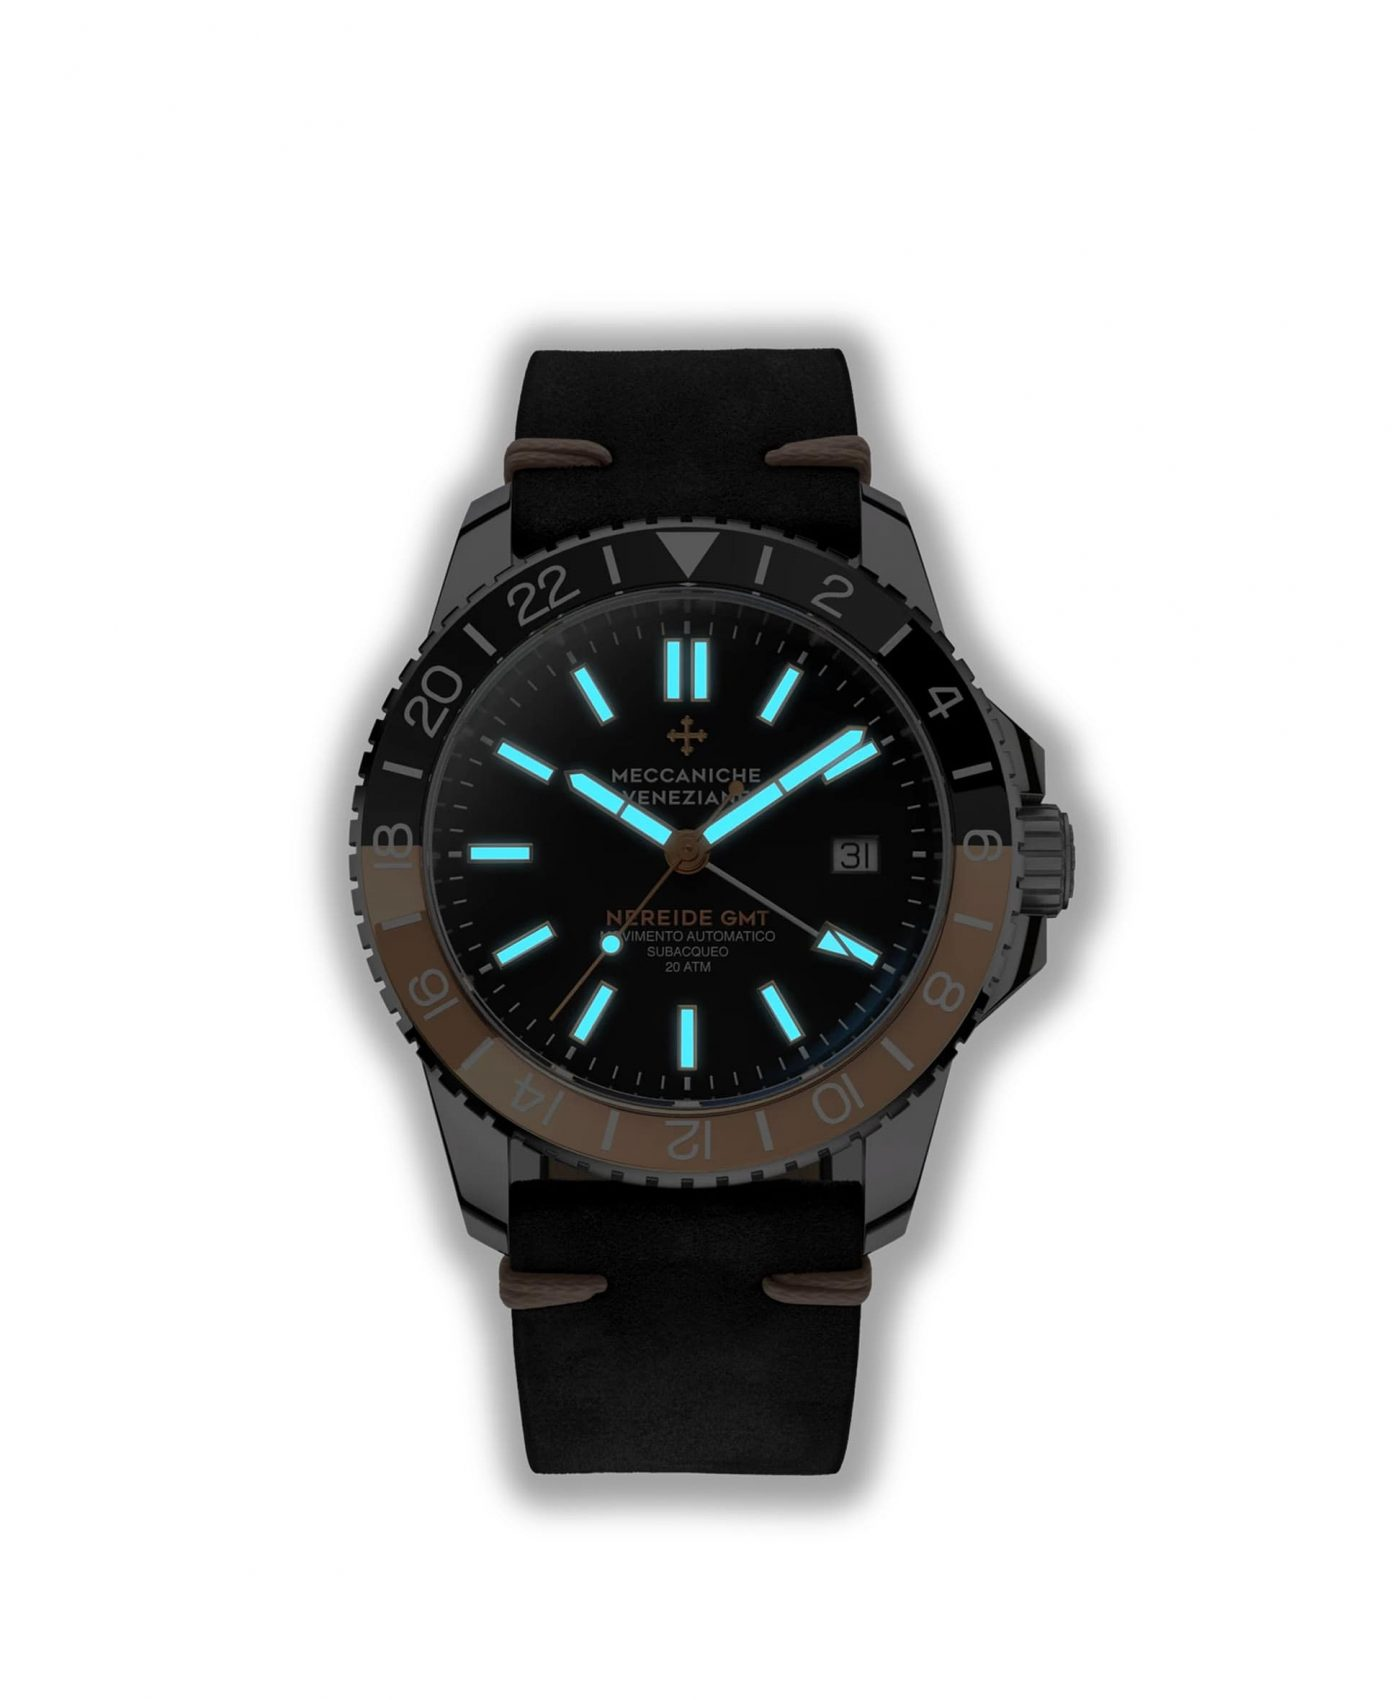 NEREIDE GMT Ø42MM - 1305007 lume